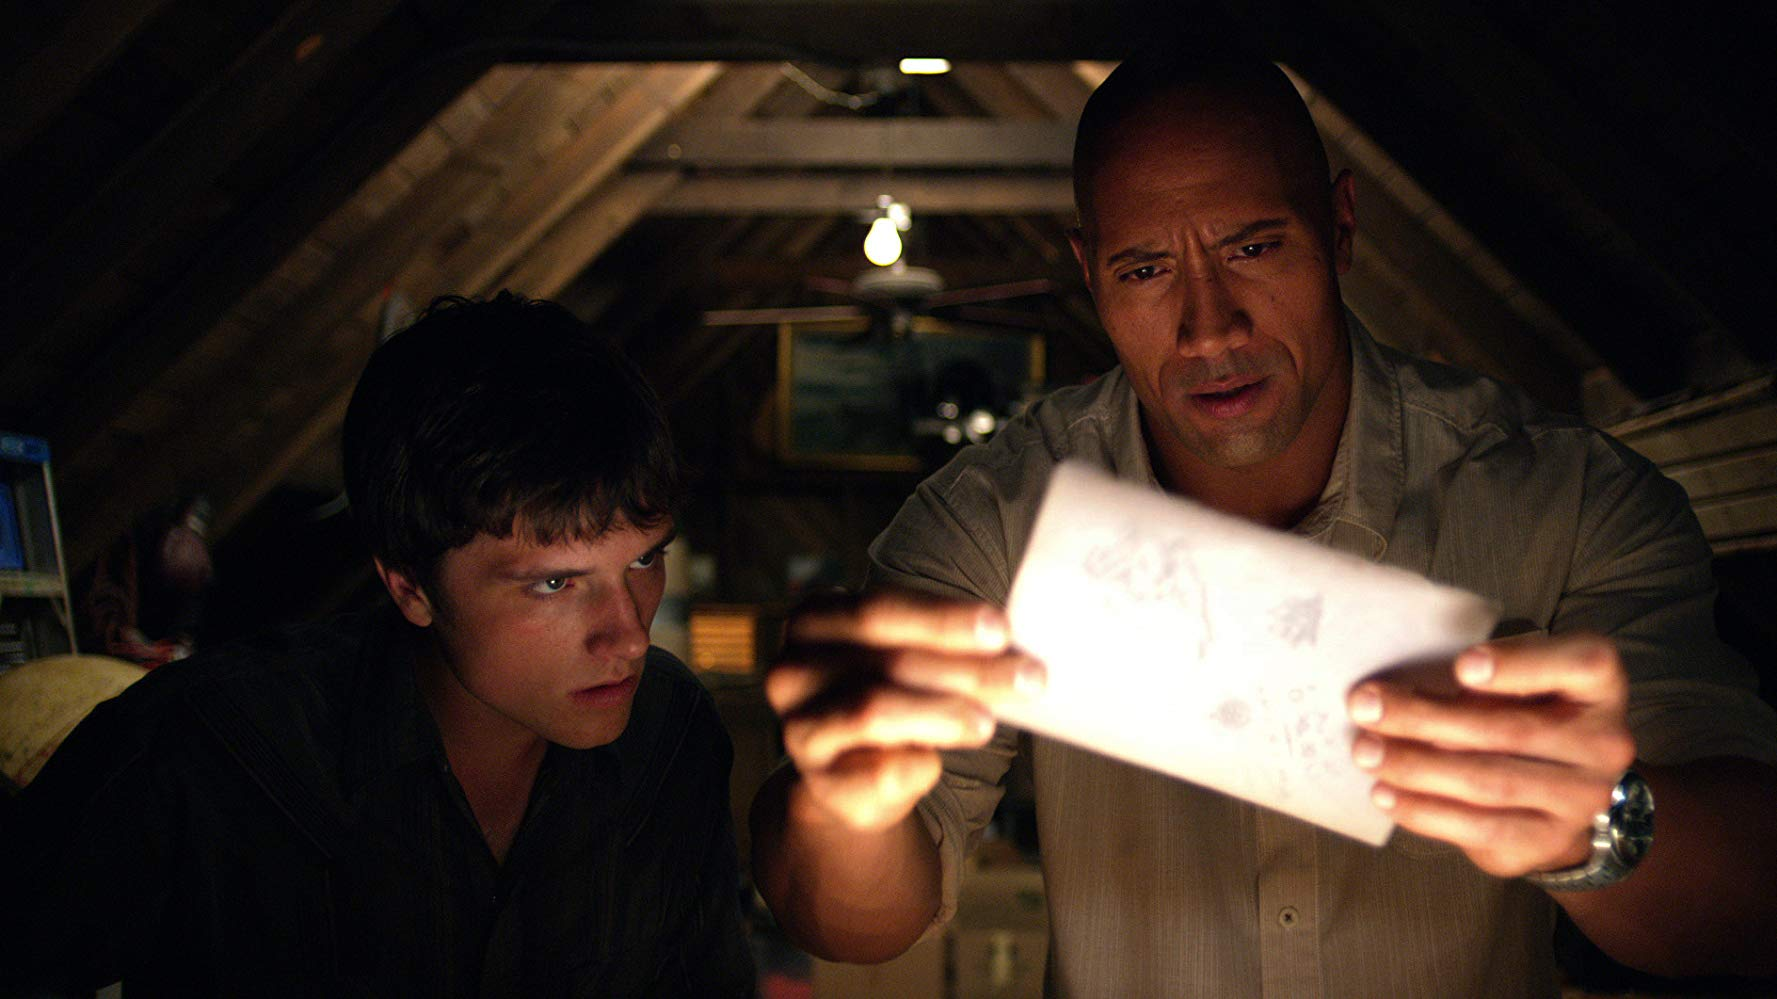 Decoding Jules Verne - Josh Hutcherson, Dwayne Johnson in Journey 2: The Mysterious Island (2012)